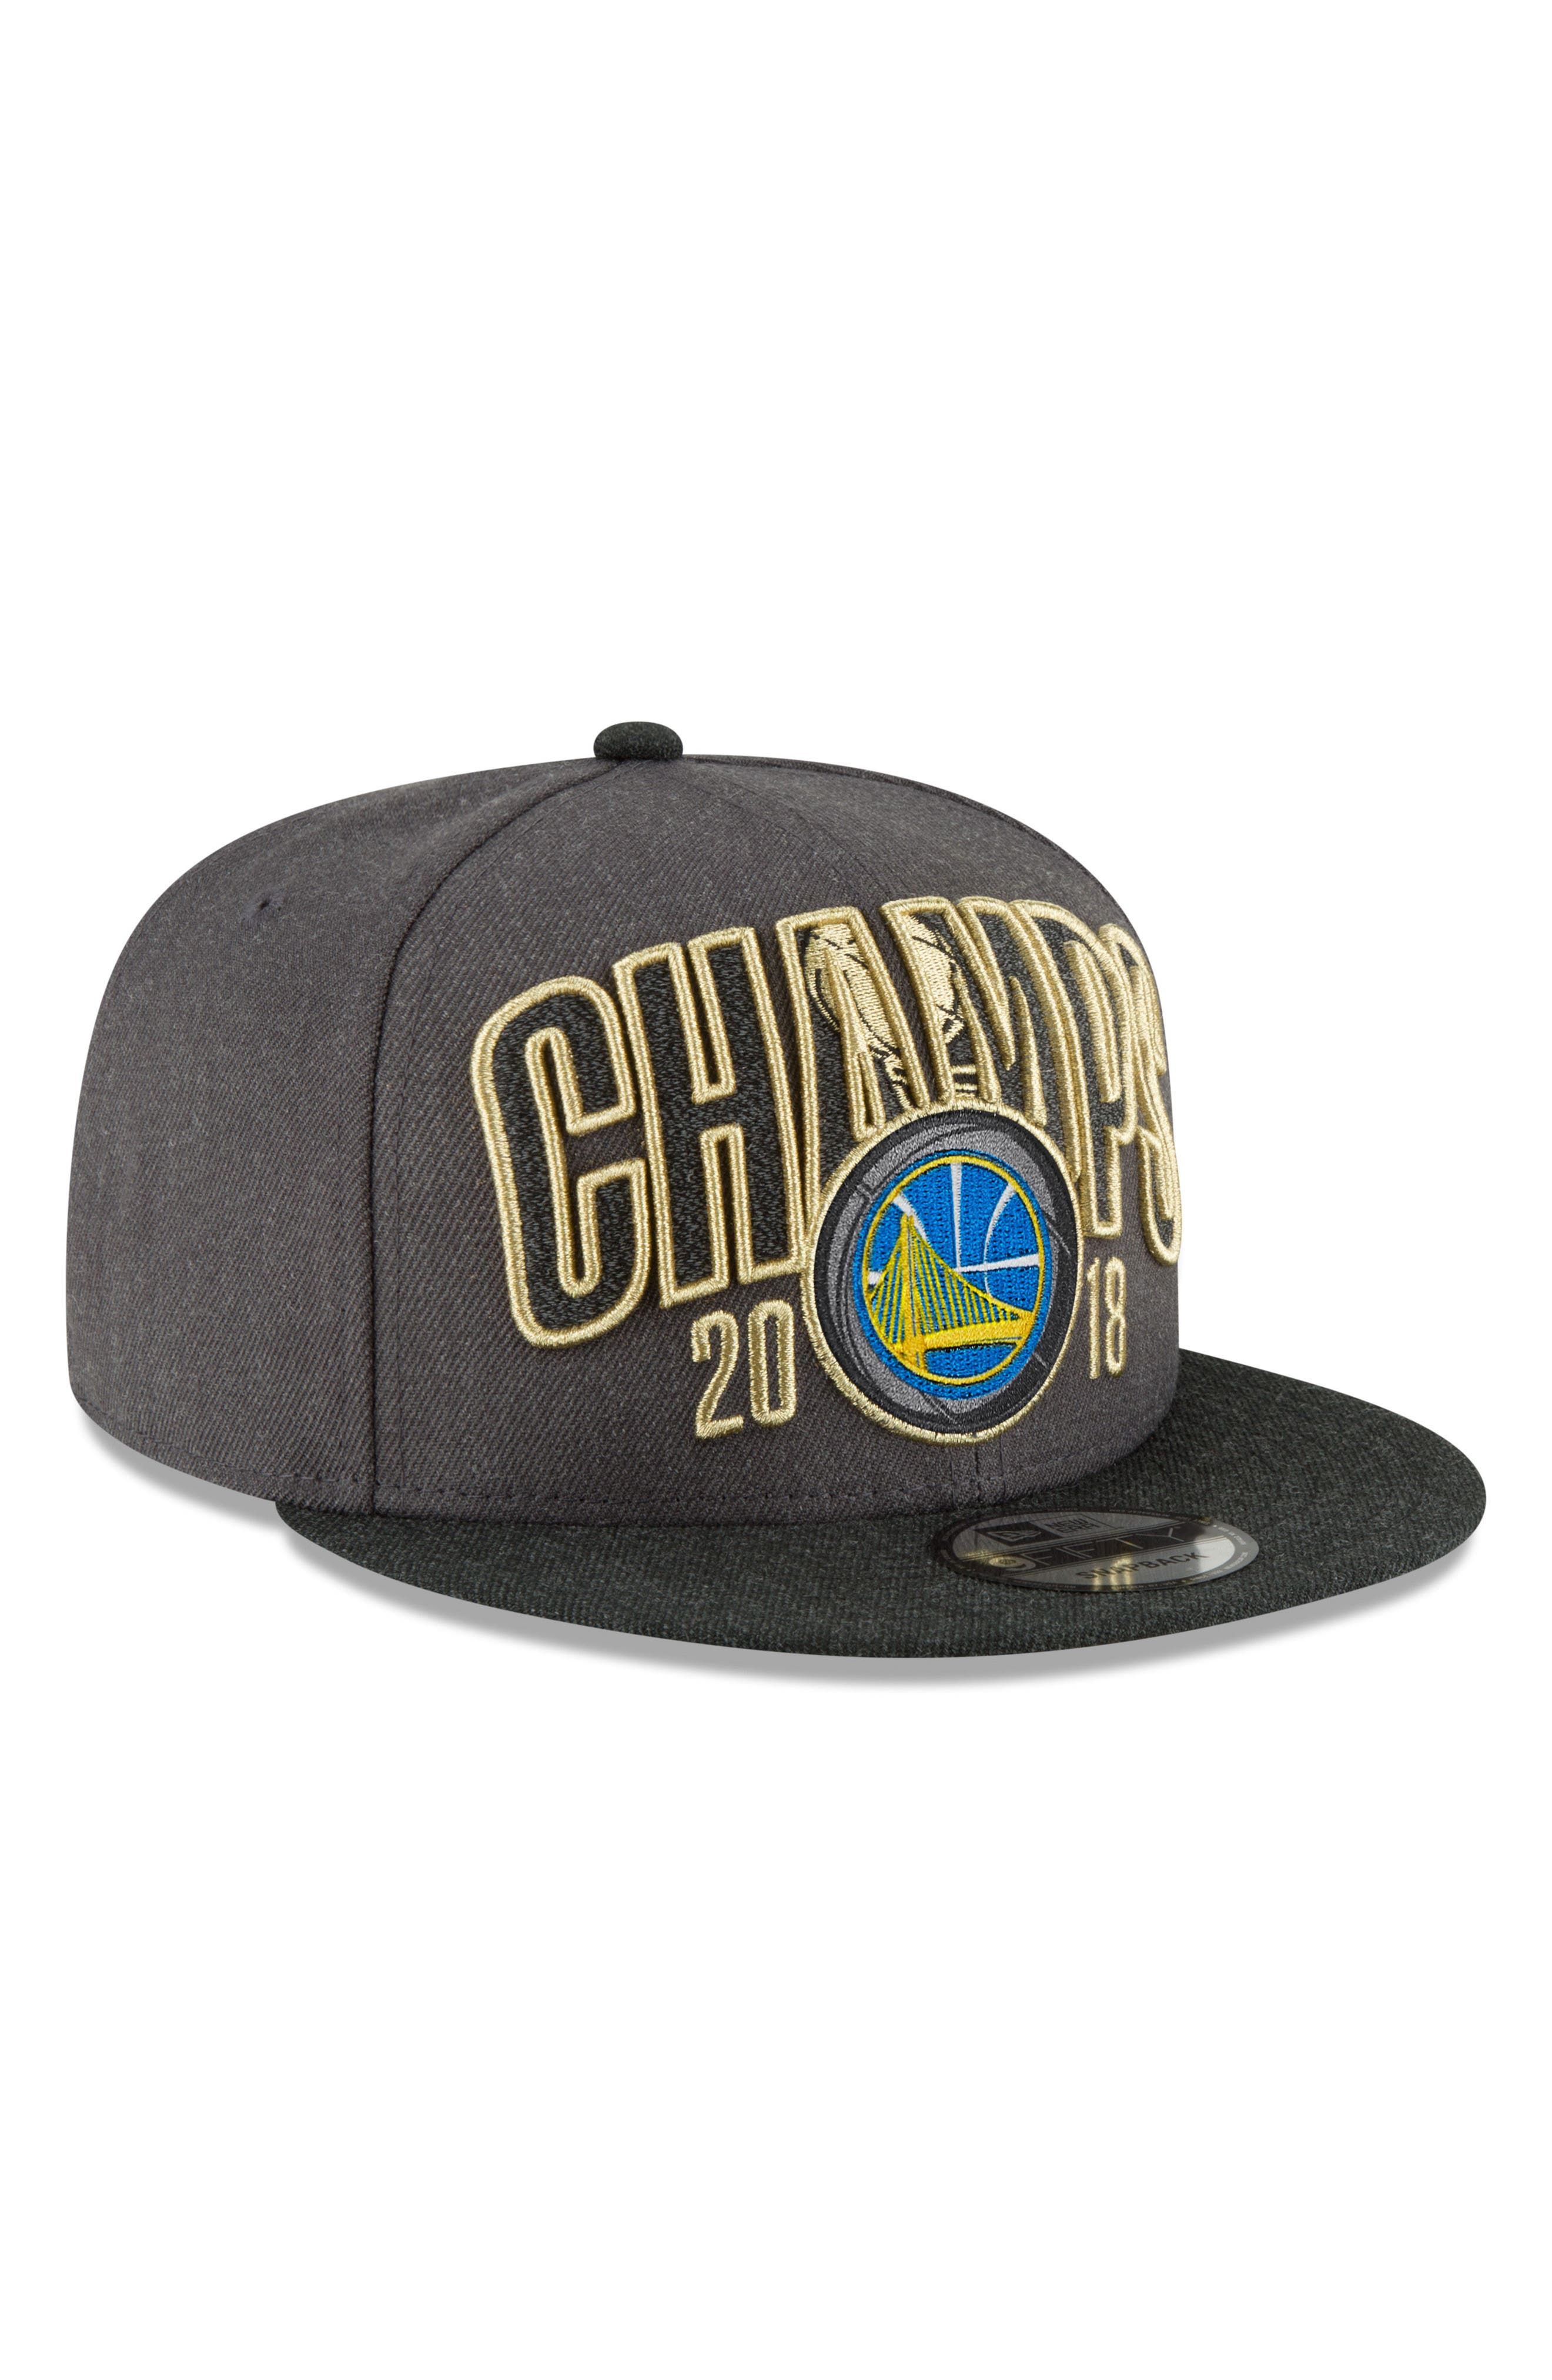 2018 NBA Champions - Golden State Warriors 9Fifty Snapback Cap,                             Main thumbnail 1, color,                             030